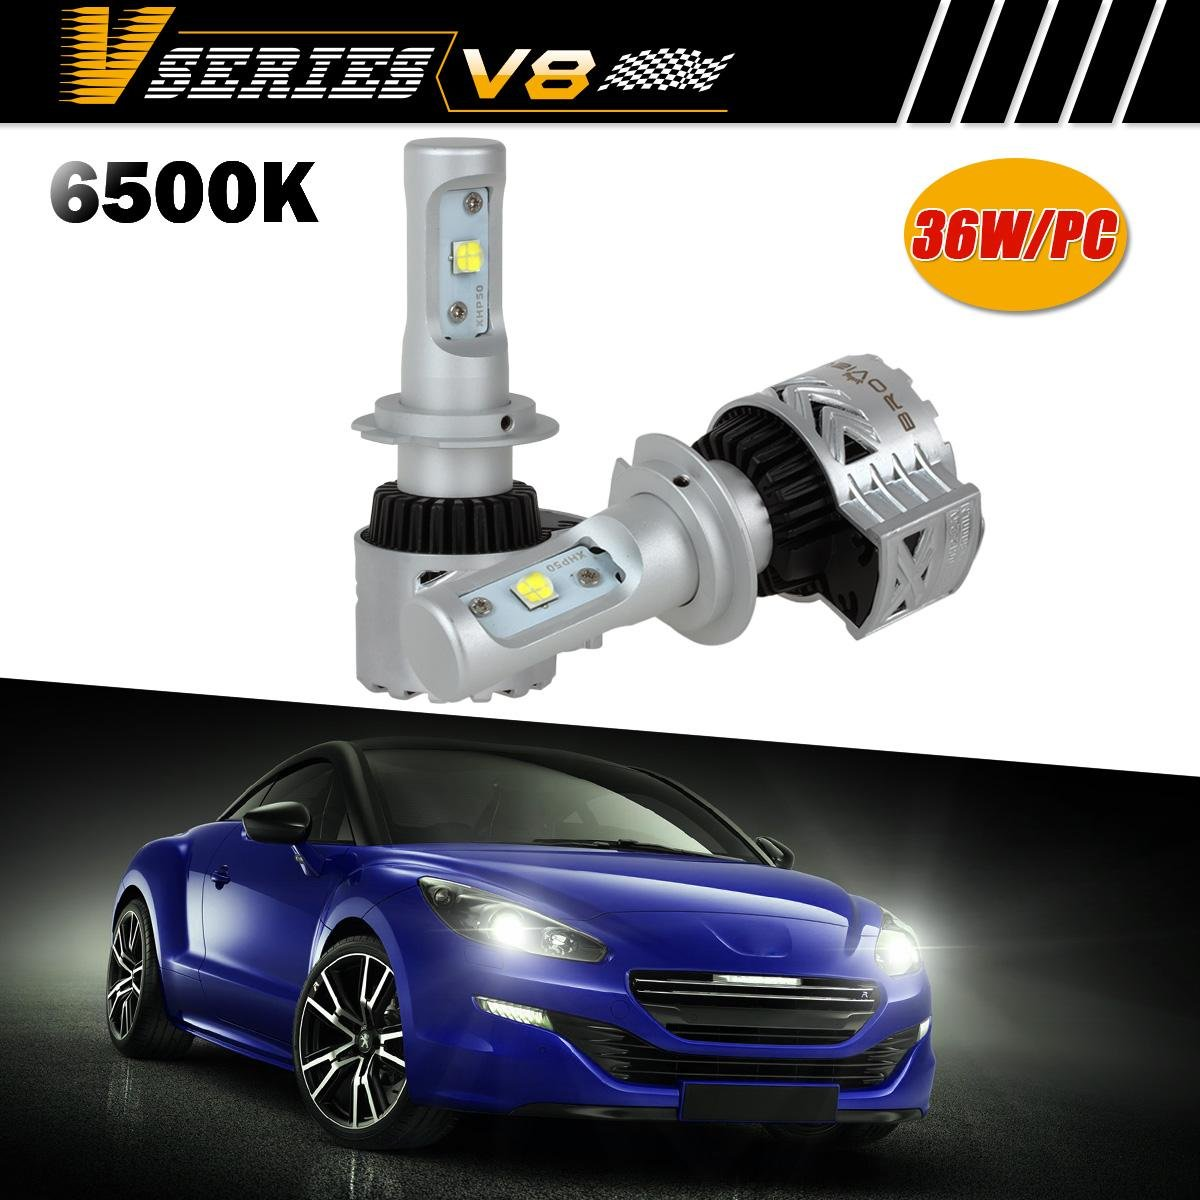 Broview V8 Led Headlight Bulbs W Clear Arc Beam Kit 72w 1997 Mercedes E320 Wiring Harness 12000lm 6500k White Cree Headlights For Replace Hid Xenon